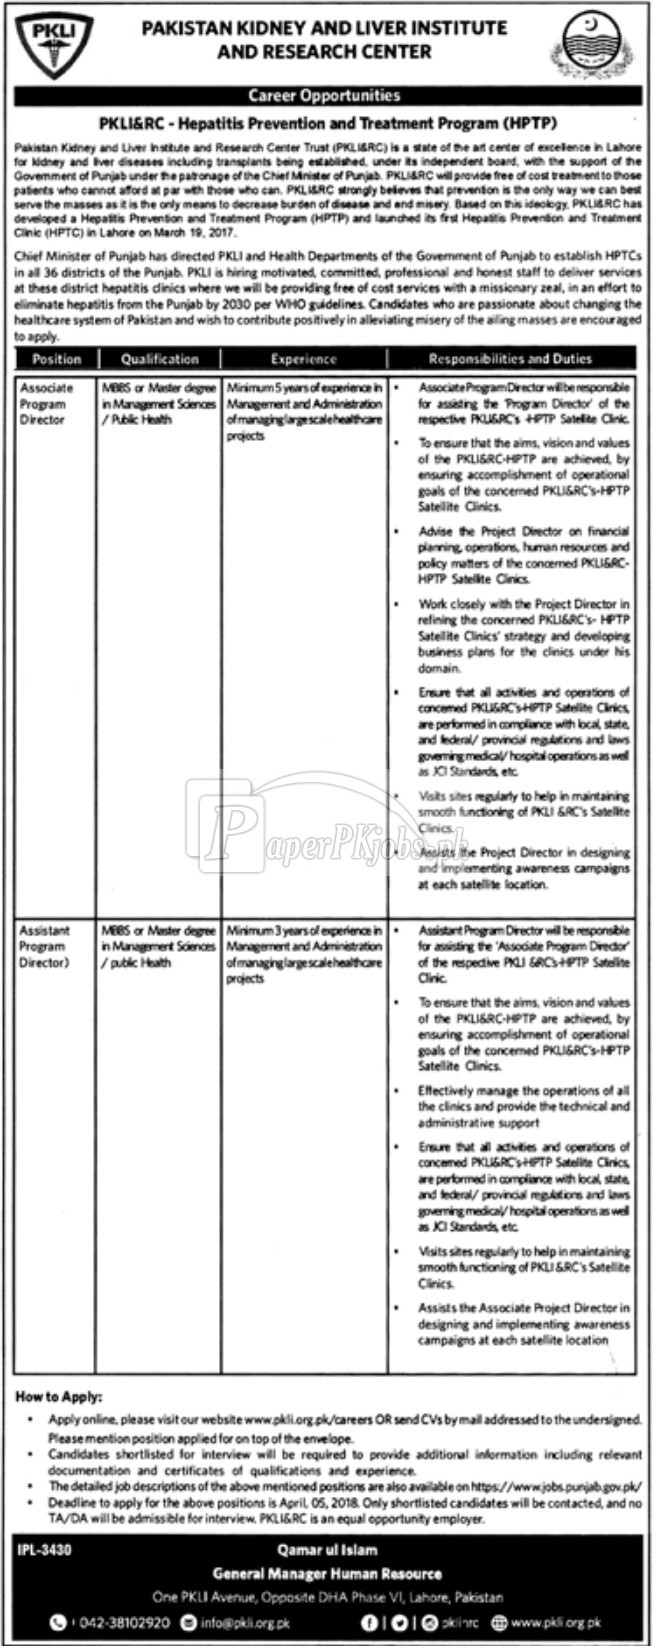 Pakistan Kidney and Liver Institute and Research Center Jobs 2018